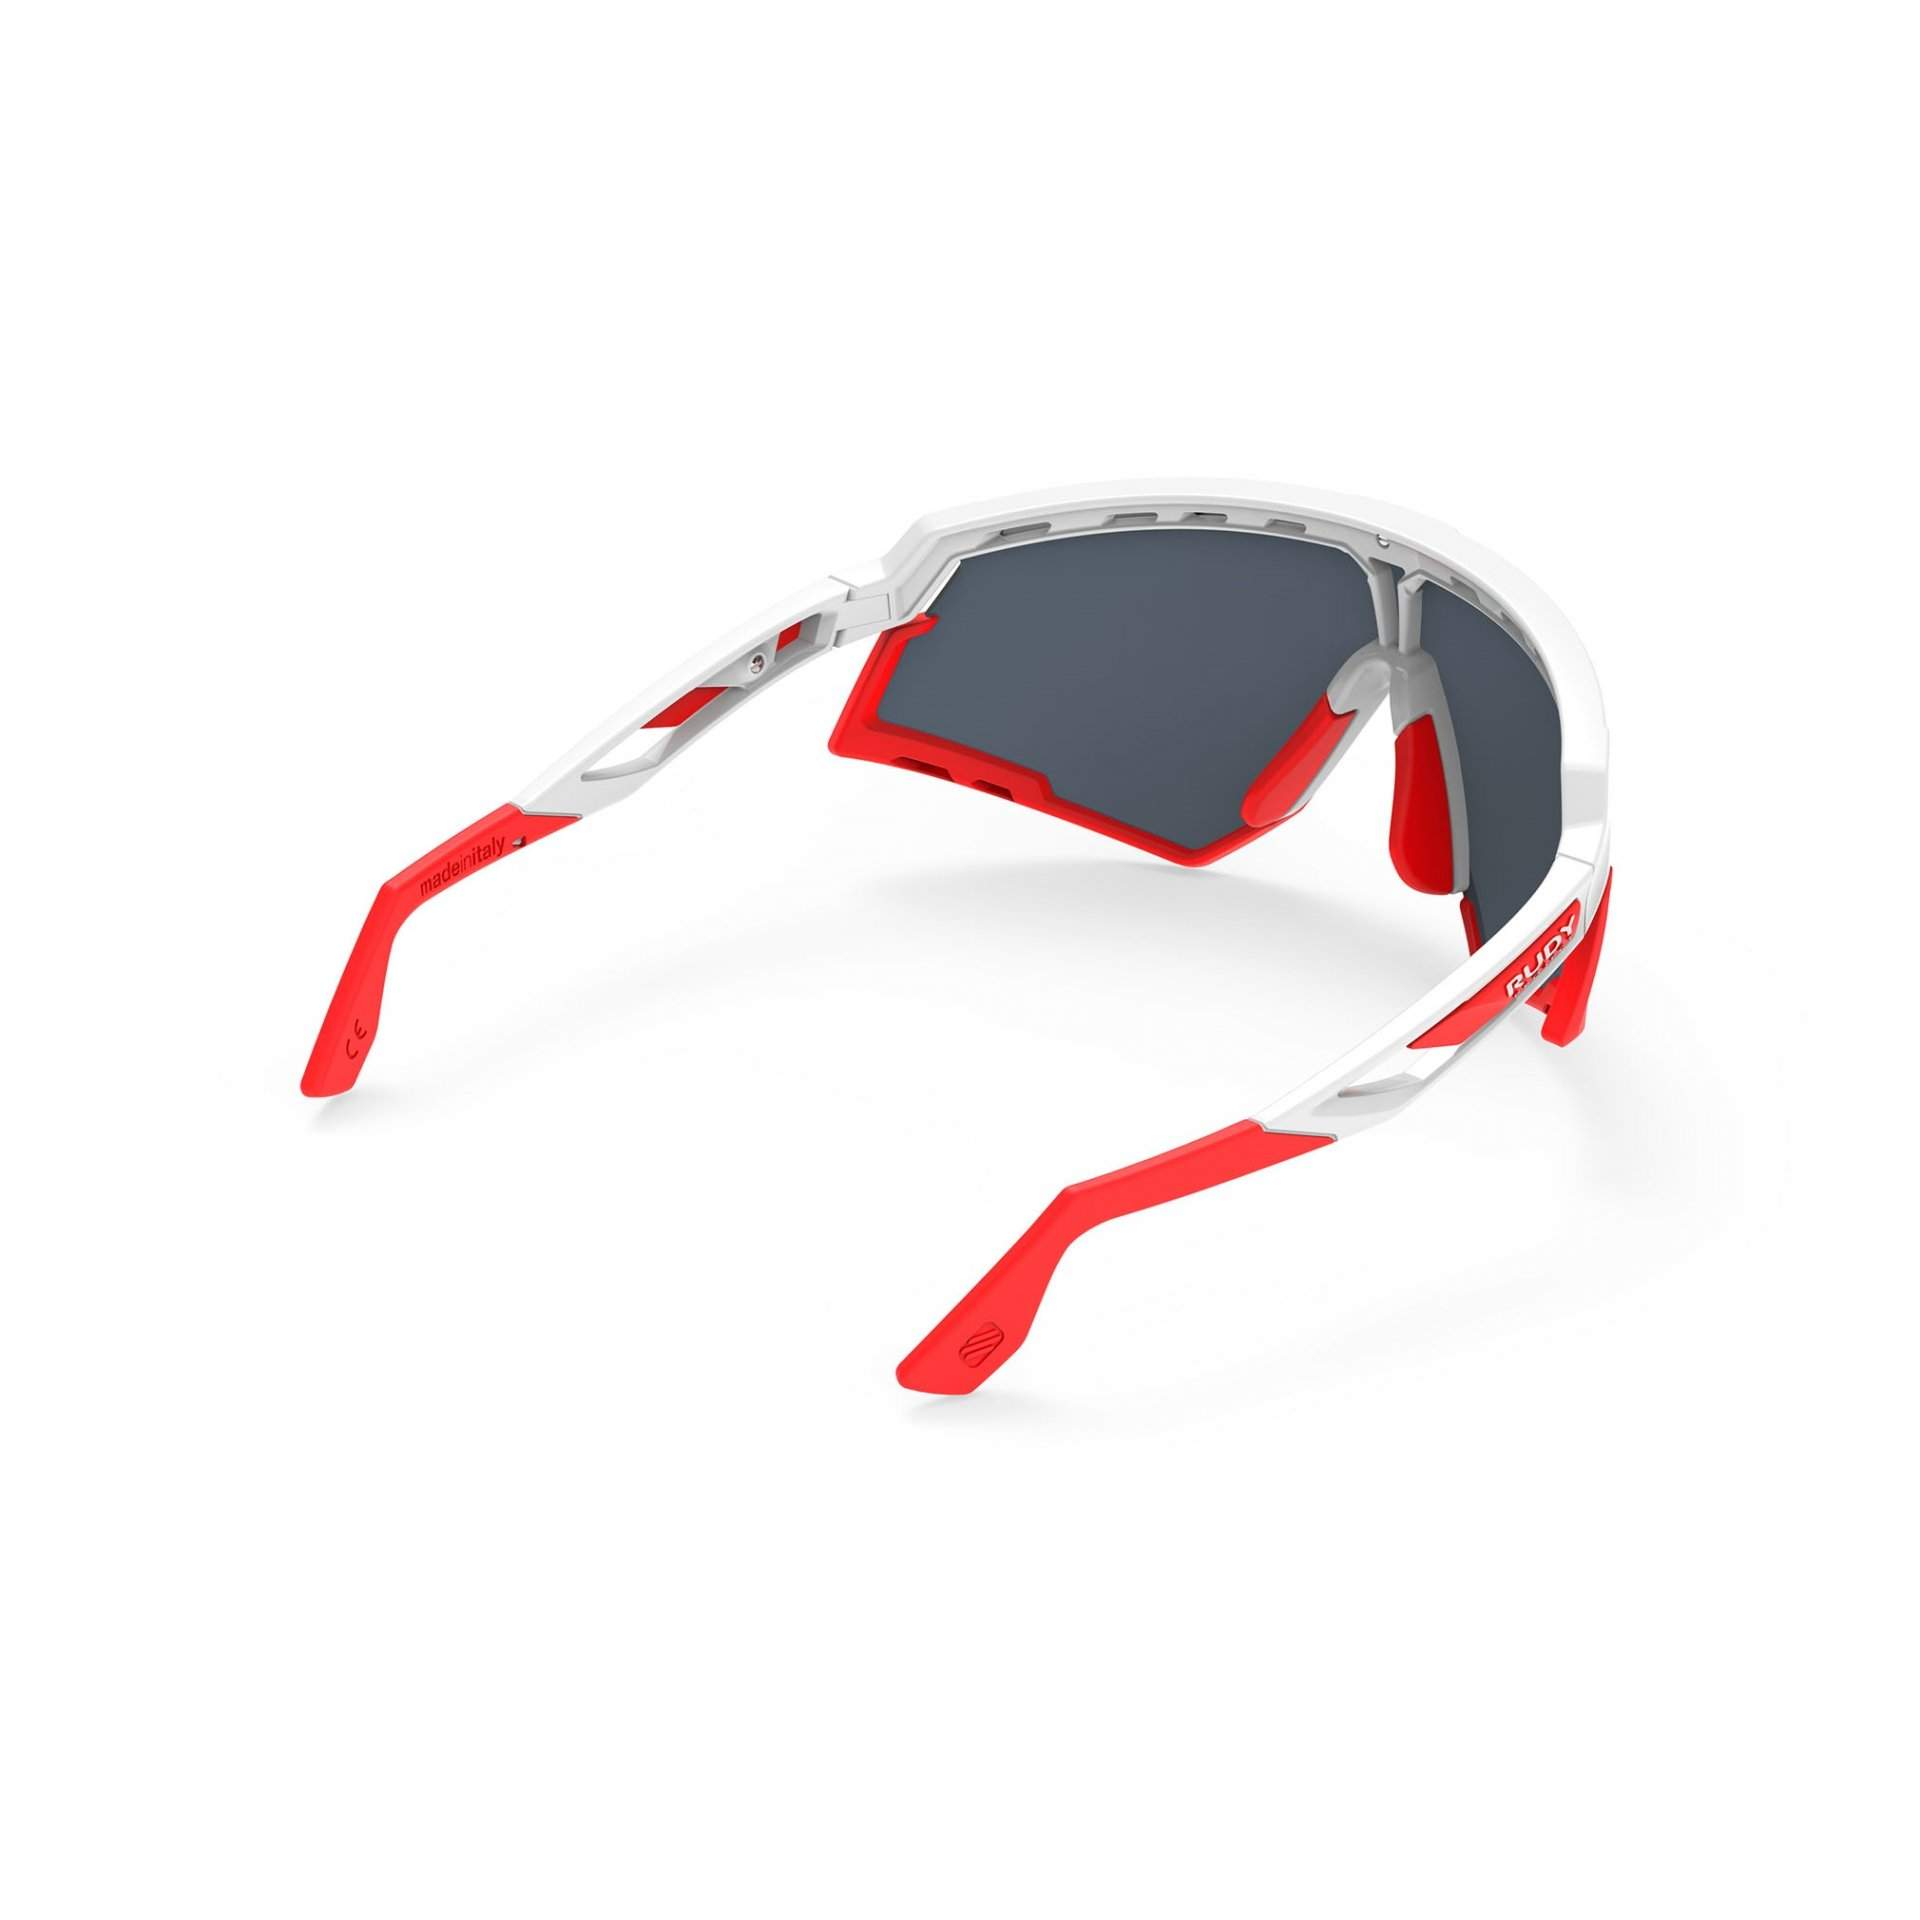 OKULARY RUDY PROJECT DEFENDER MULTILASER RED + WHITE GLOSS BUMPRES RED FLUO SP5238690000 Z TYŁU